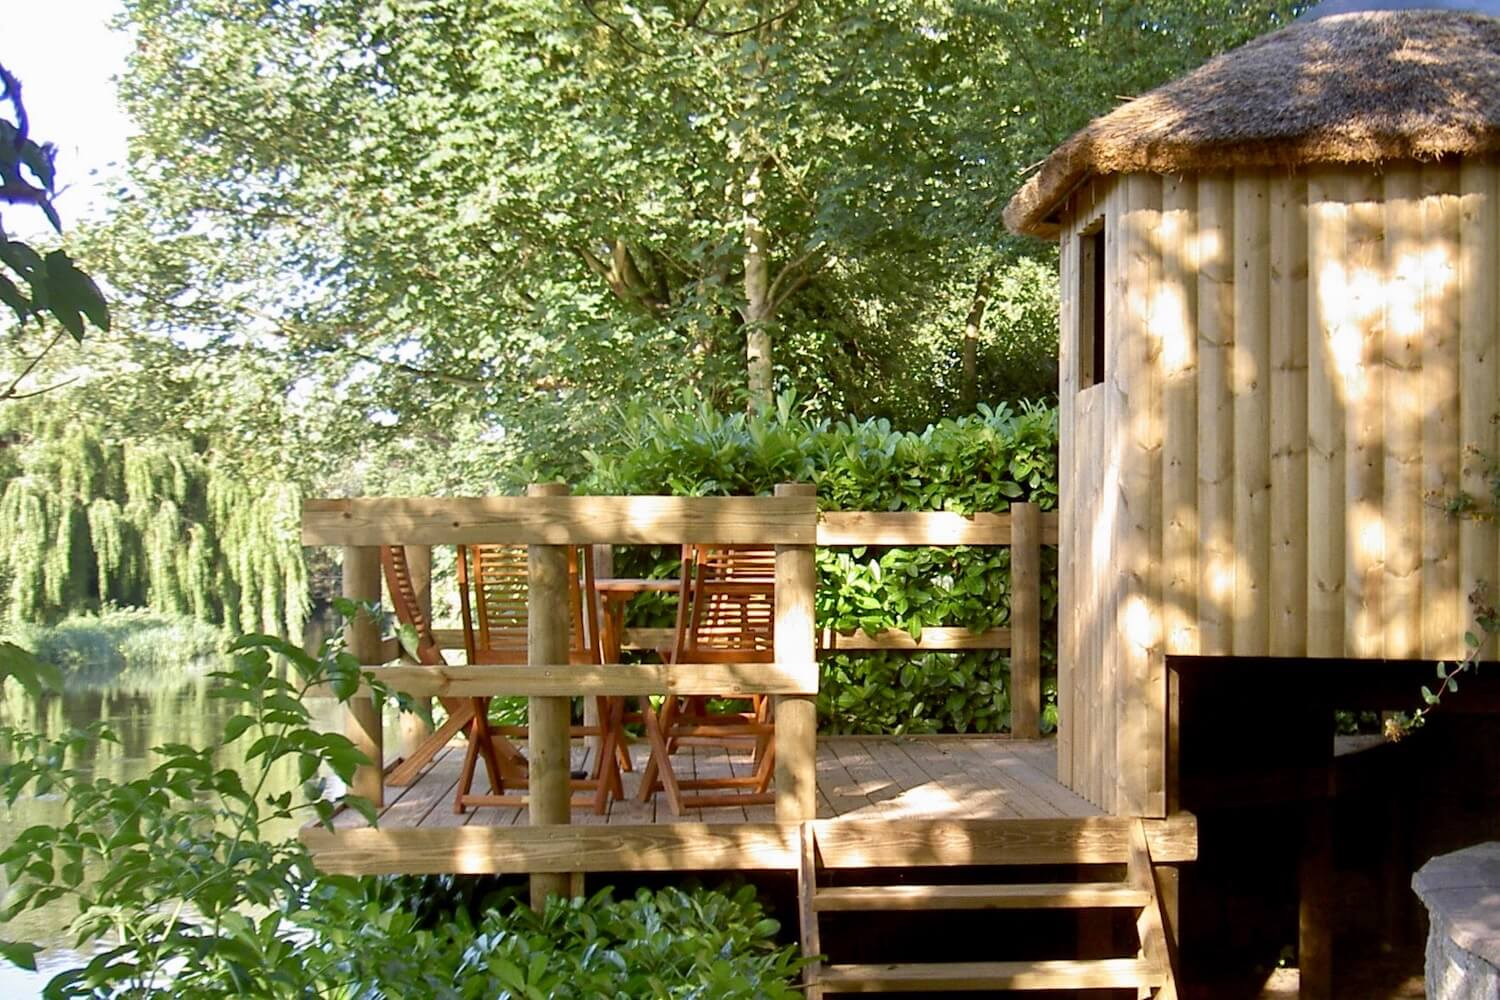 'Living' tree house